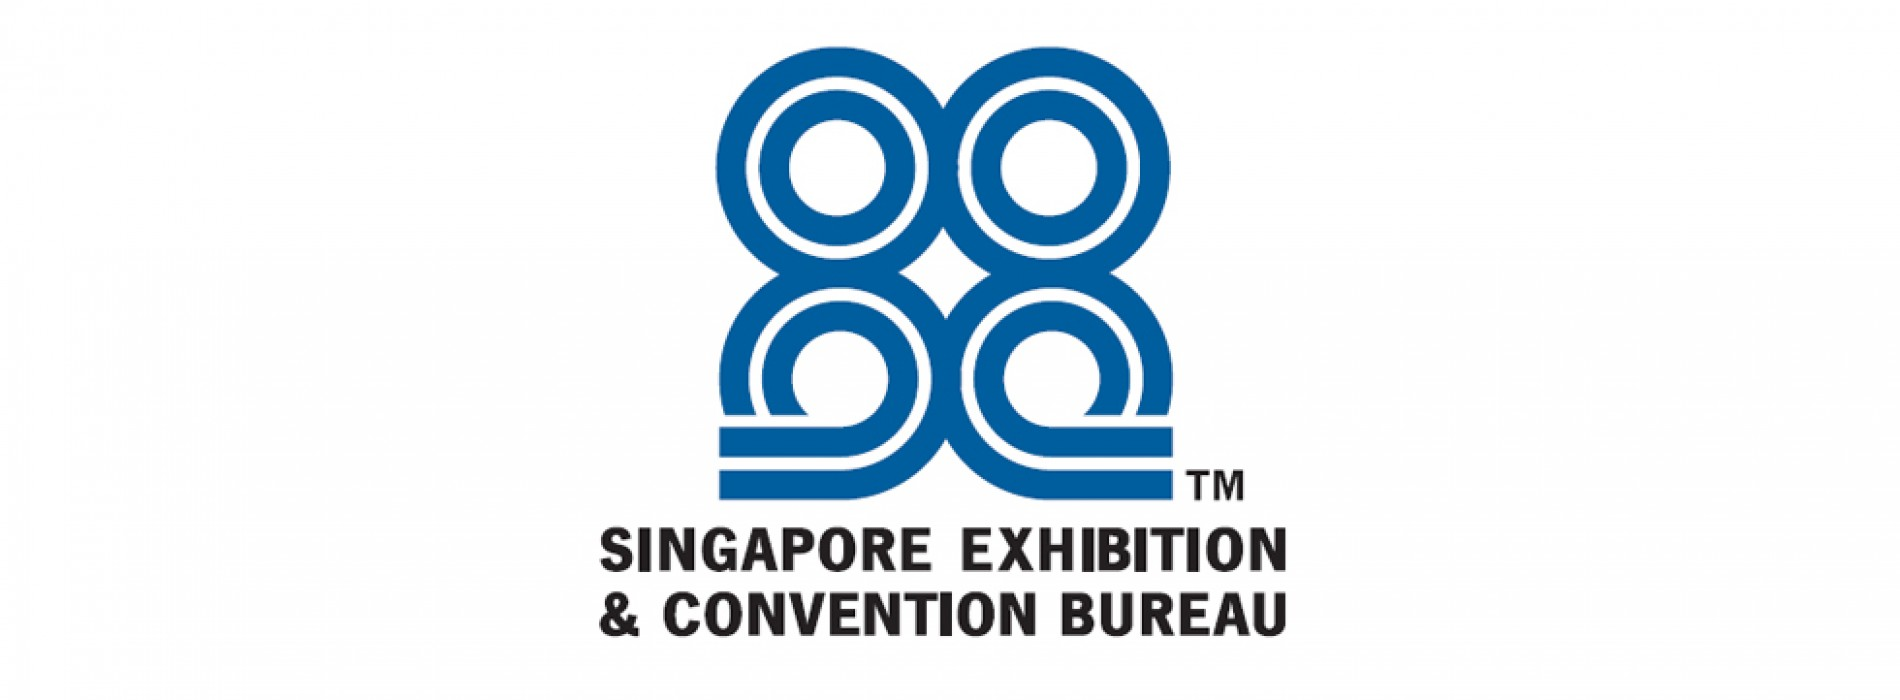 ITB Asia 2017 sees successful buyer programme partnerships following increased involvement of exhibitors